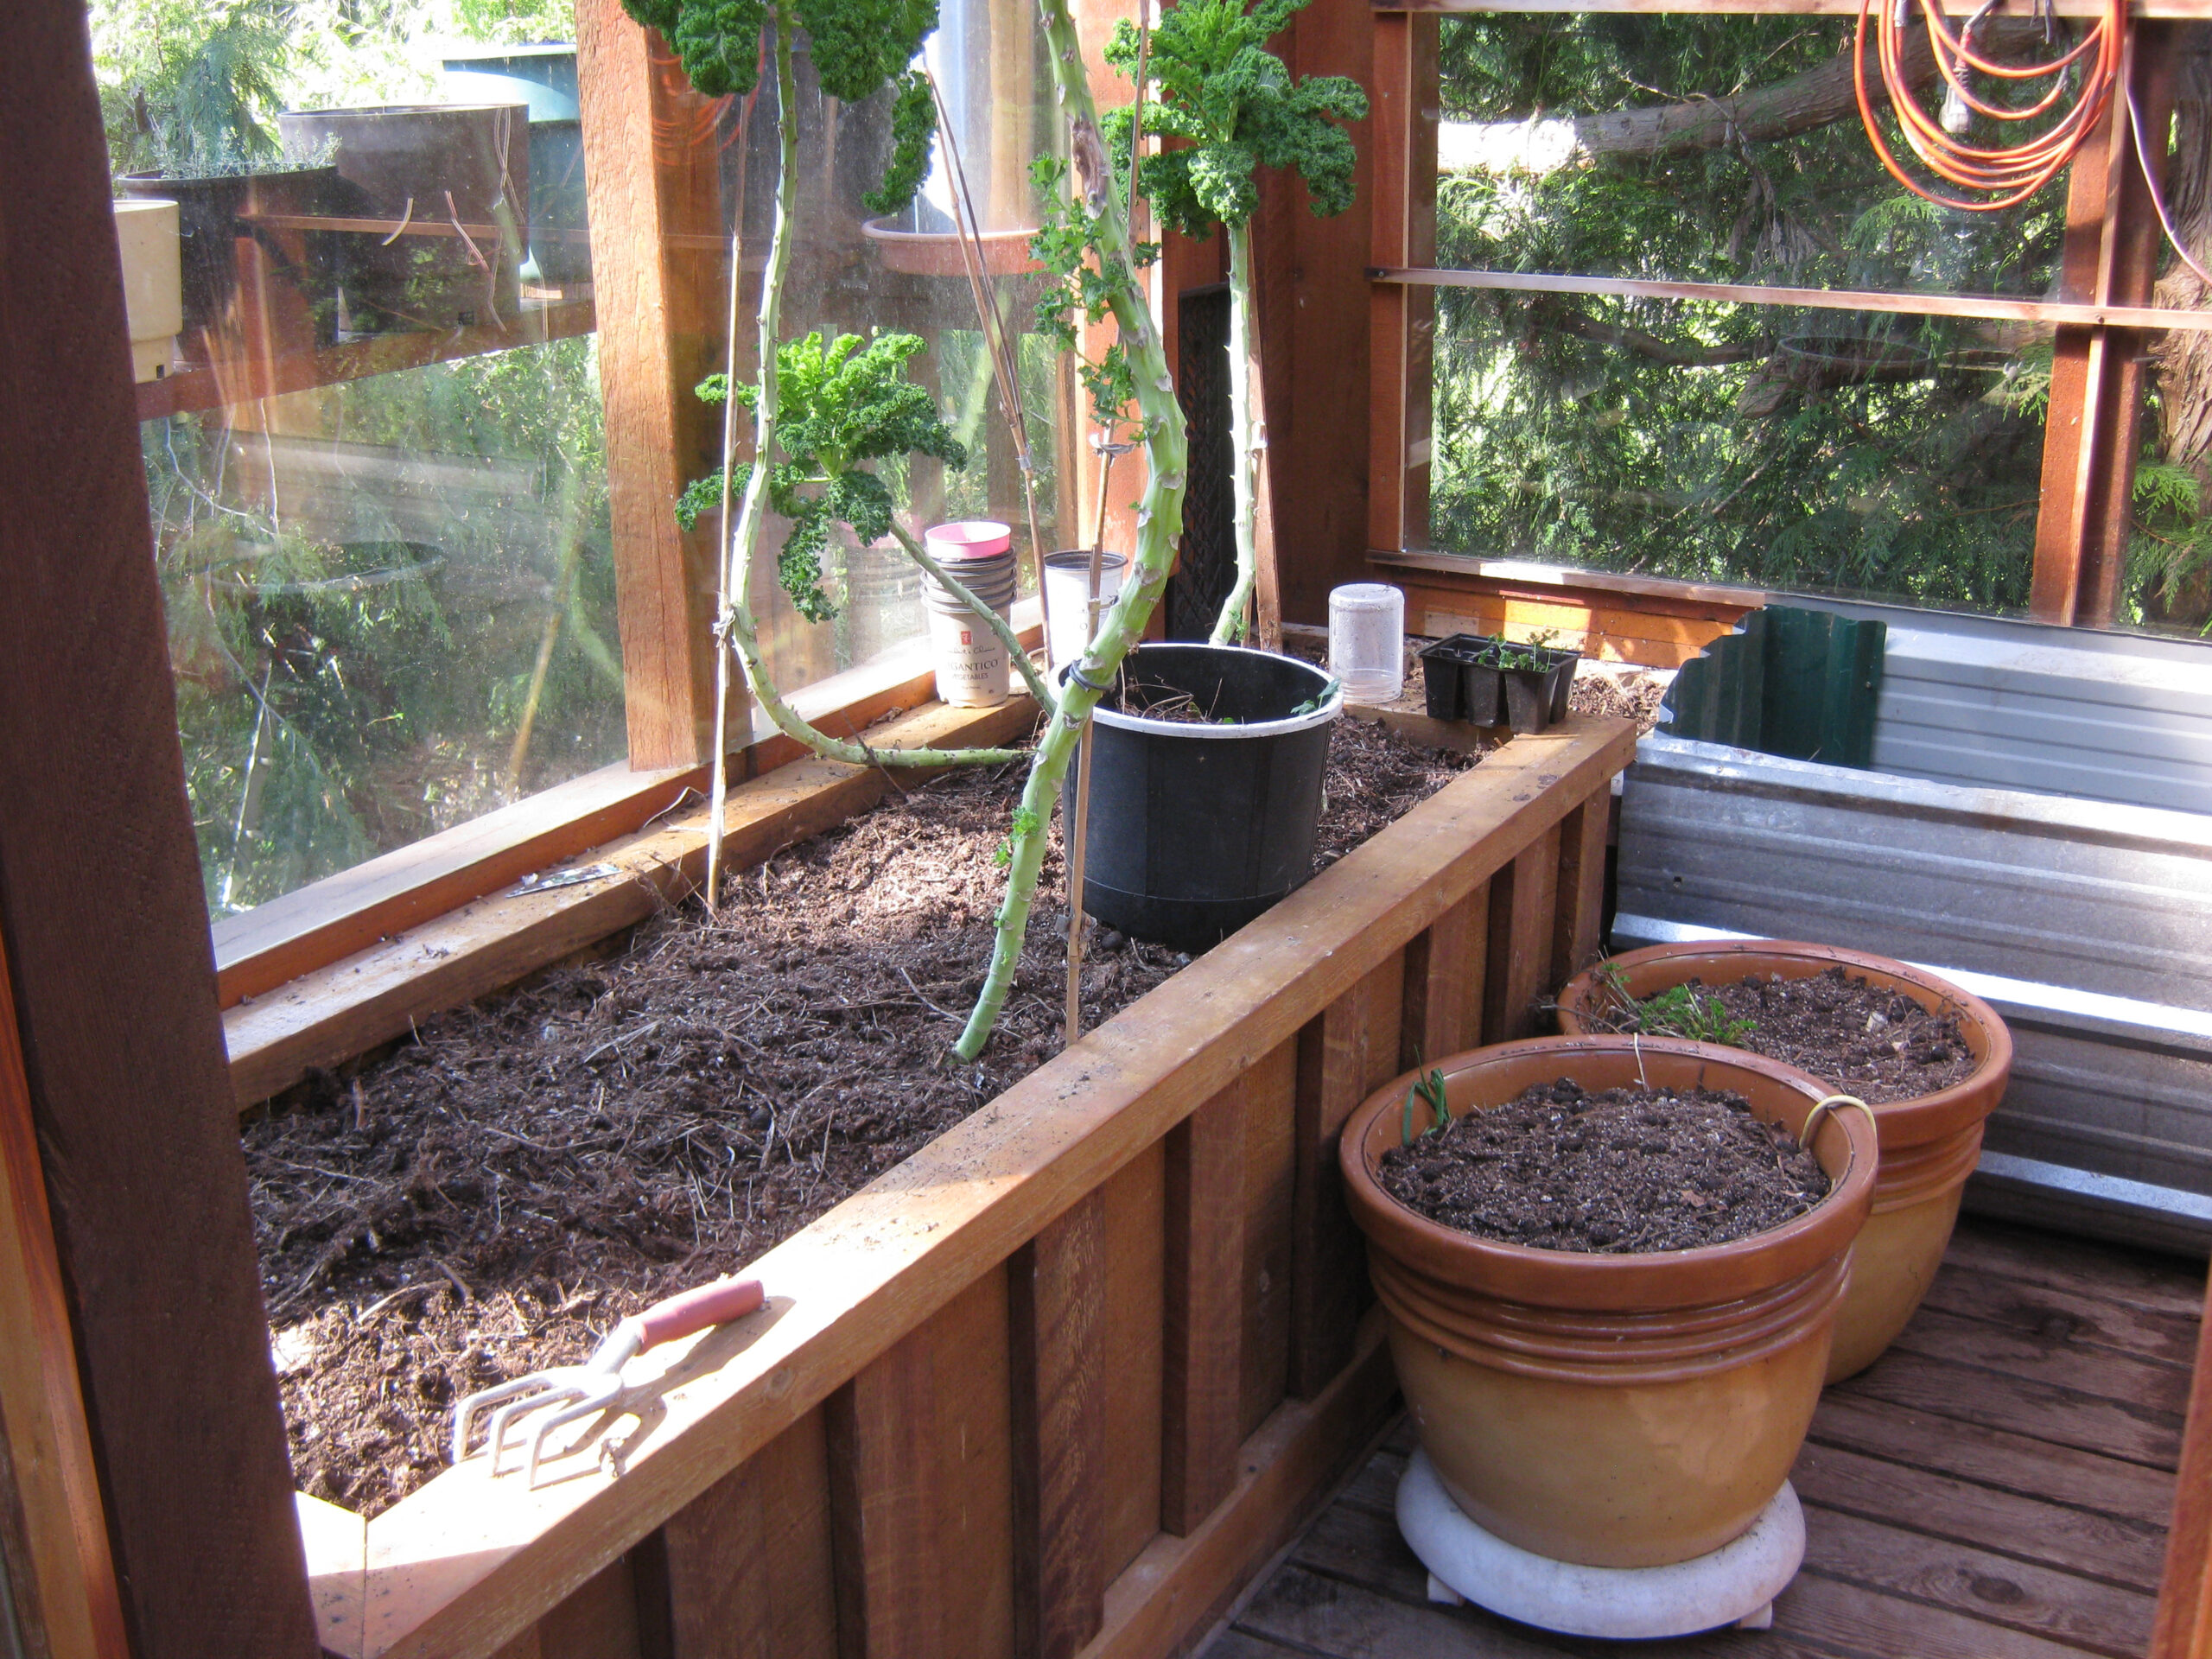 planters in the greenhouse